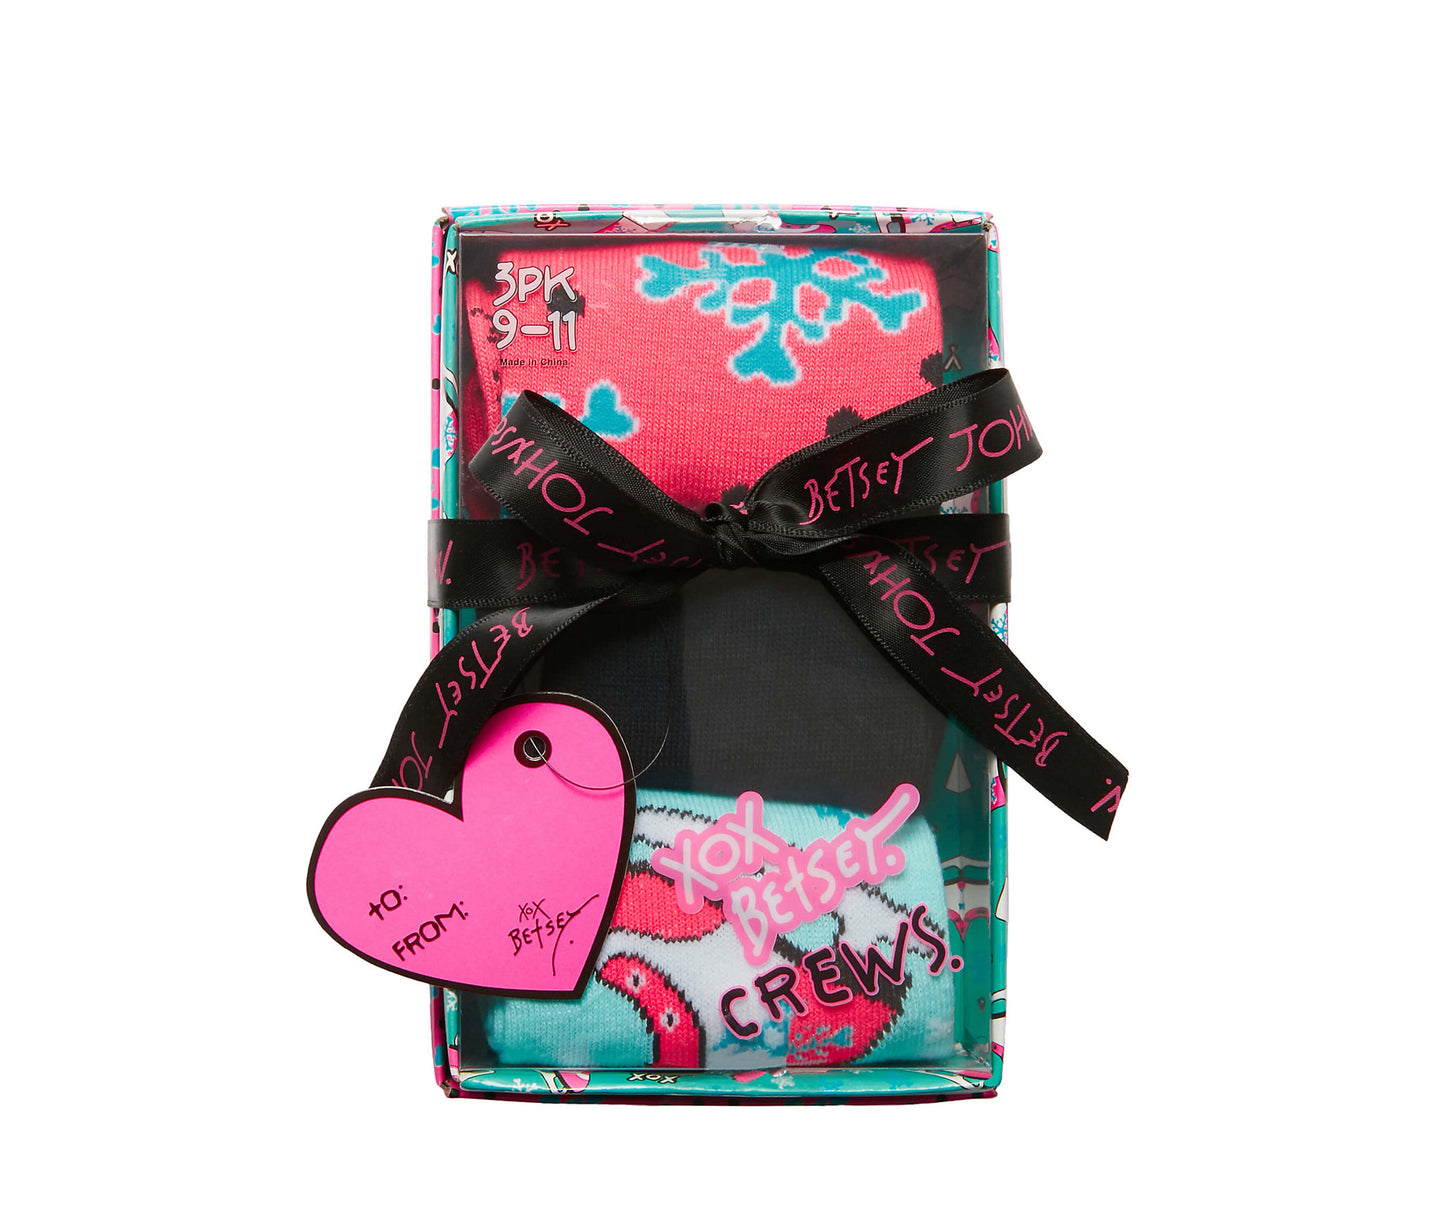 SKATERS DREAM CREW 3 PACK GIFT BOX MULTI - ACCESSORIES - Betsey Johnson